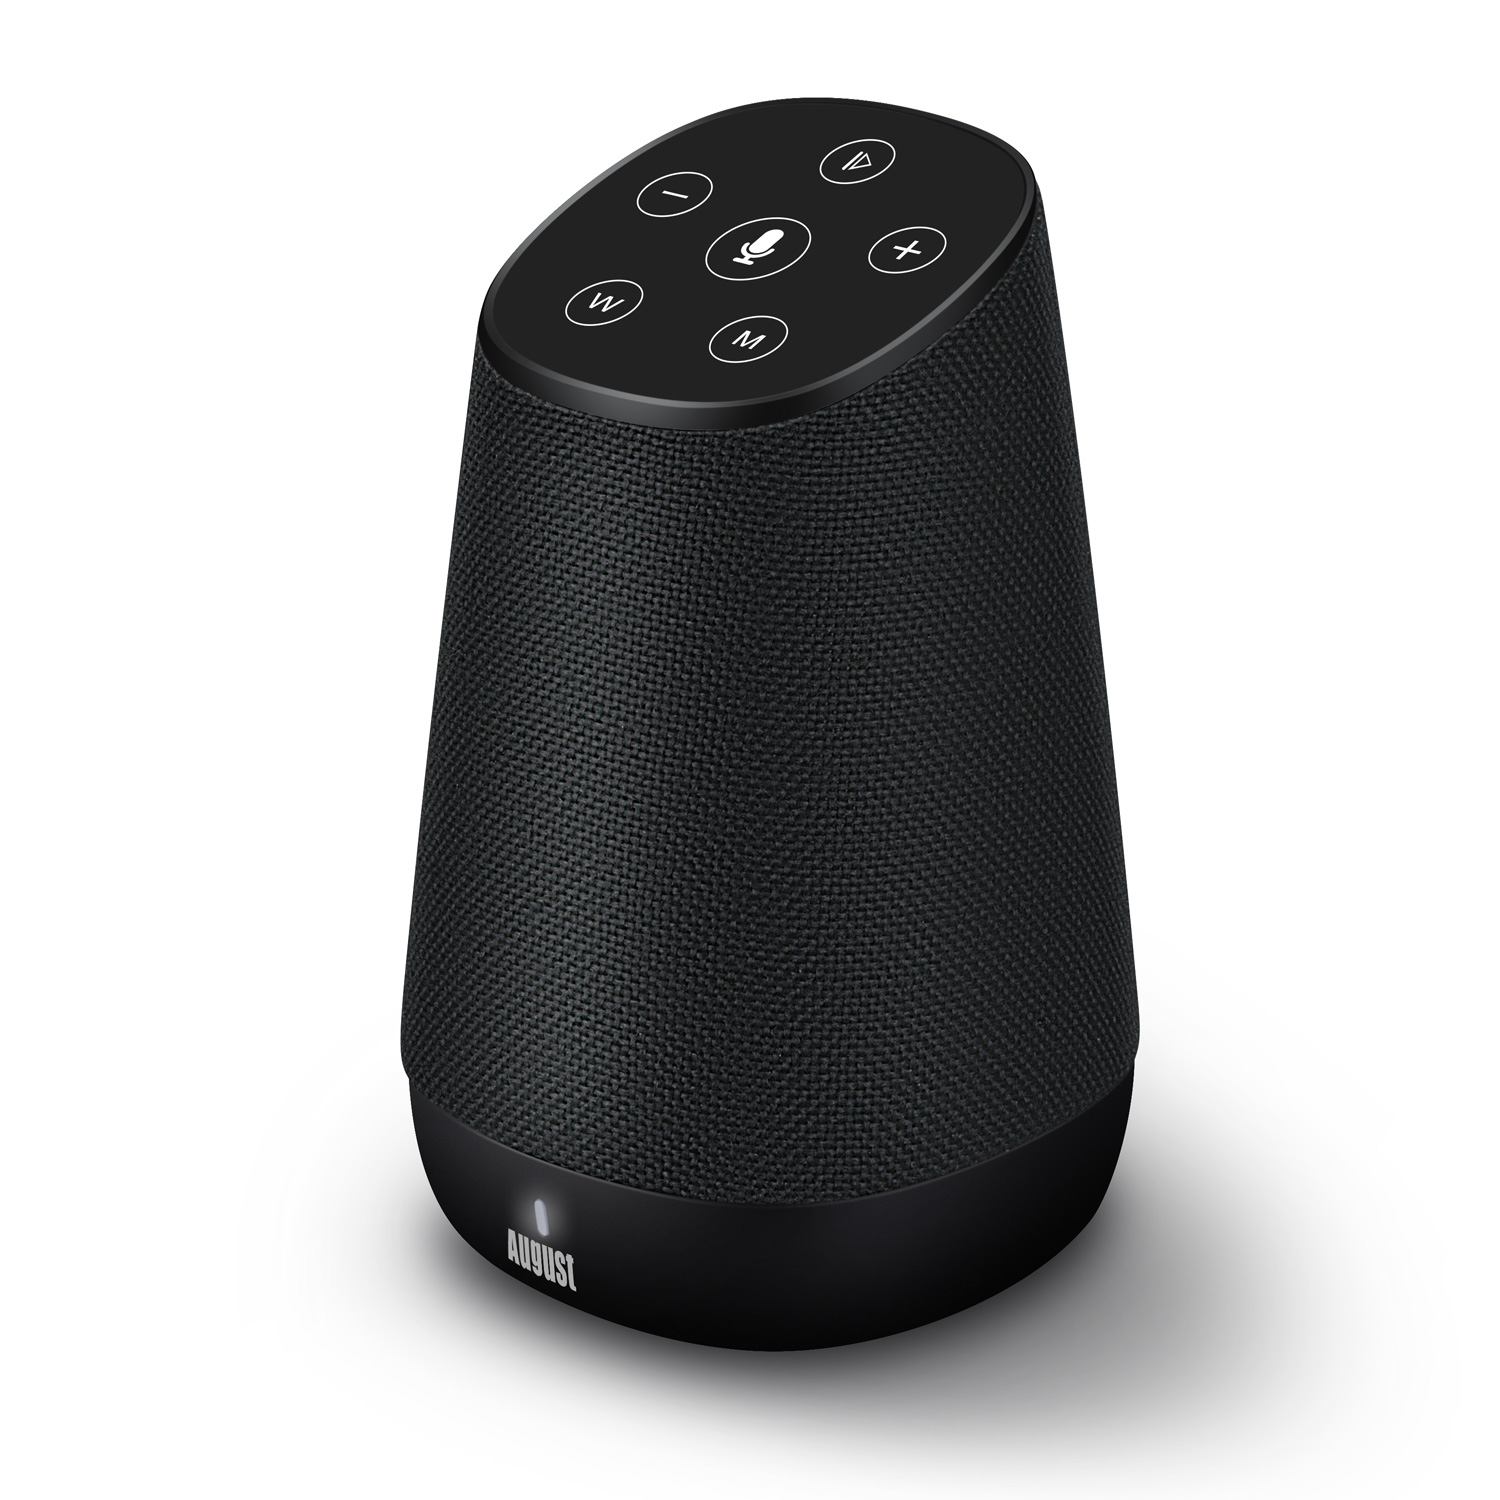 Altavoz Estéreo Multiroom WiFi - August VENUS - Servicio Amazon Alexa Voz Inteligente - Altavoces Bluetooth y Wi-Fi - Airplay / Spotify / Tidal / Tune In / Radio iHeart / Compatible DLNA